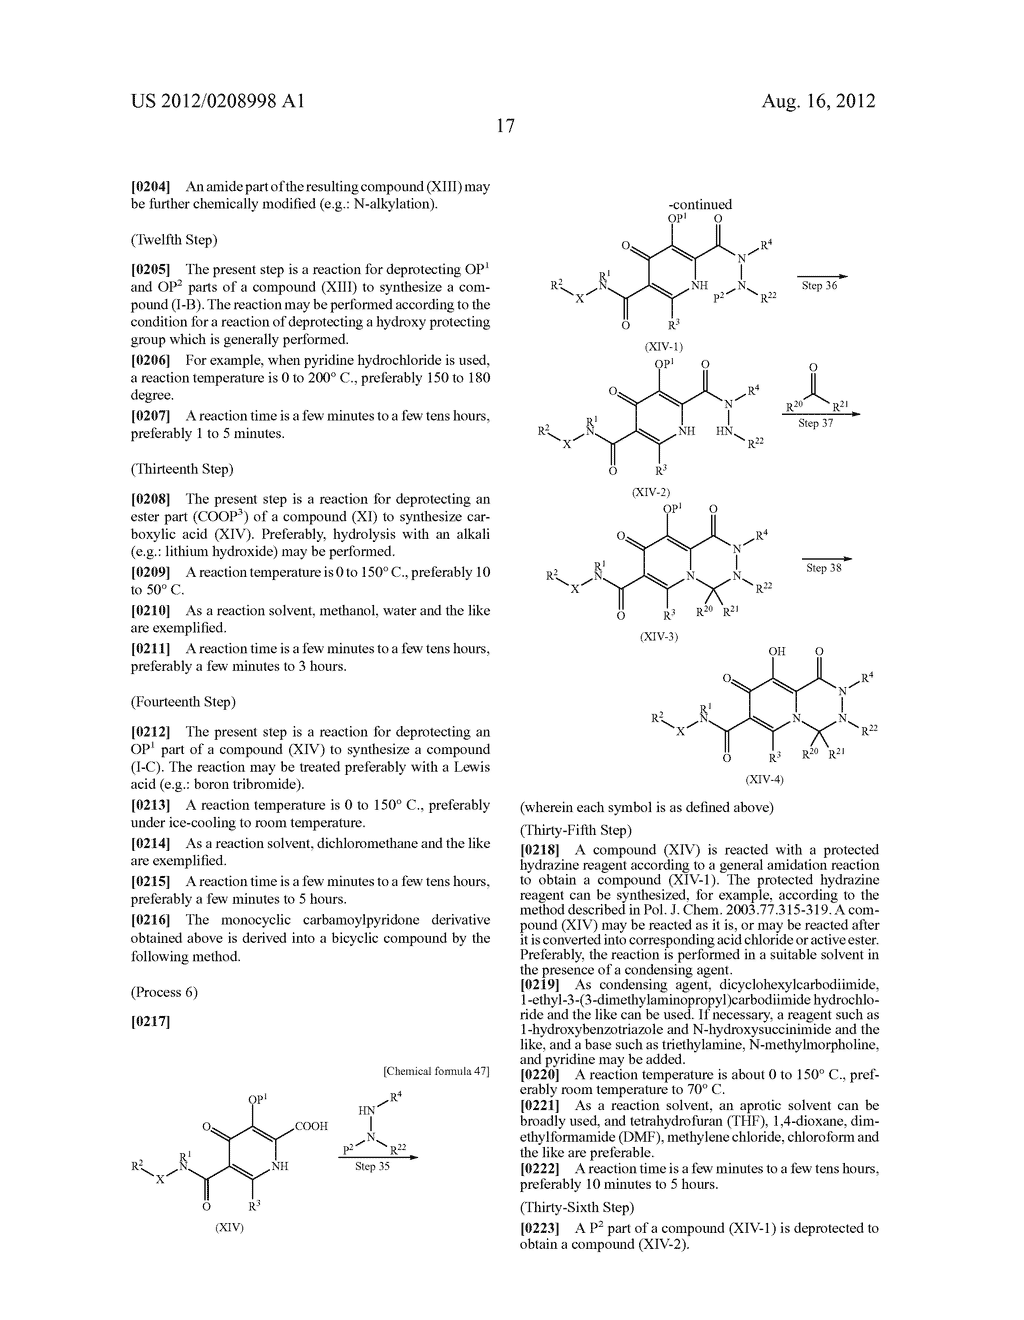 POLYCYCLIC CARBAMOYLPYRIDONE DERIVATIVE HAVING HIV INTEGRASE INHIBITORY     ACTIVITY - diagram, schematic, and image 18